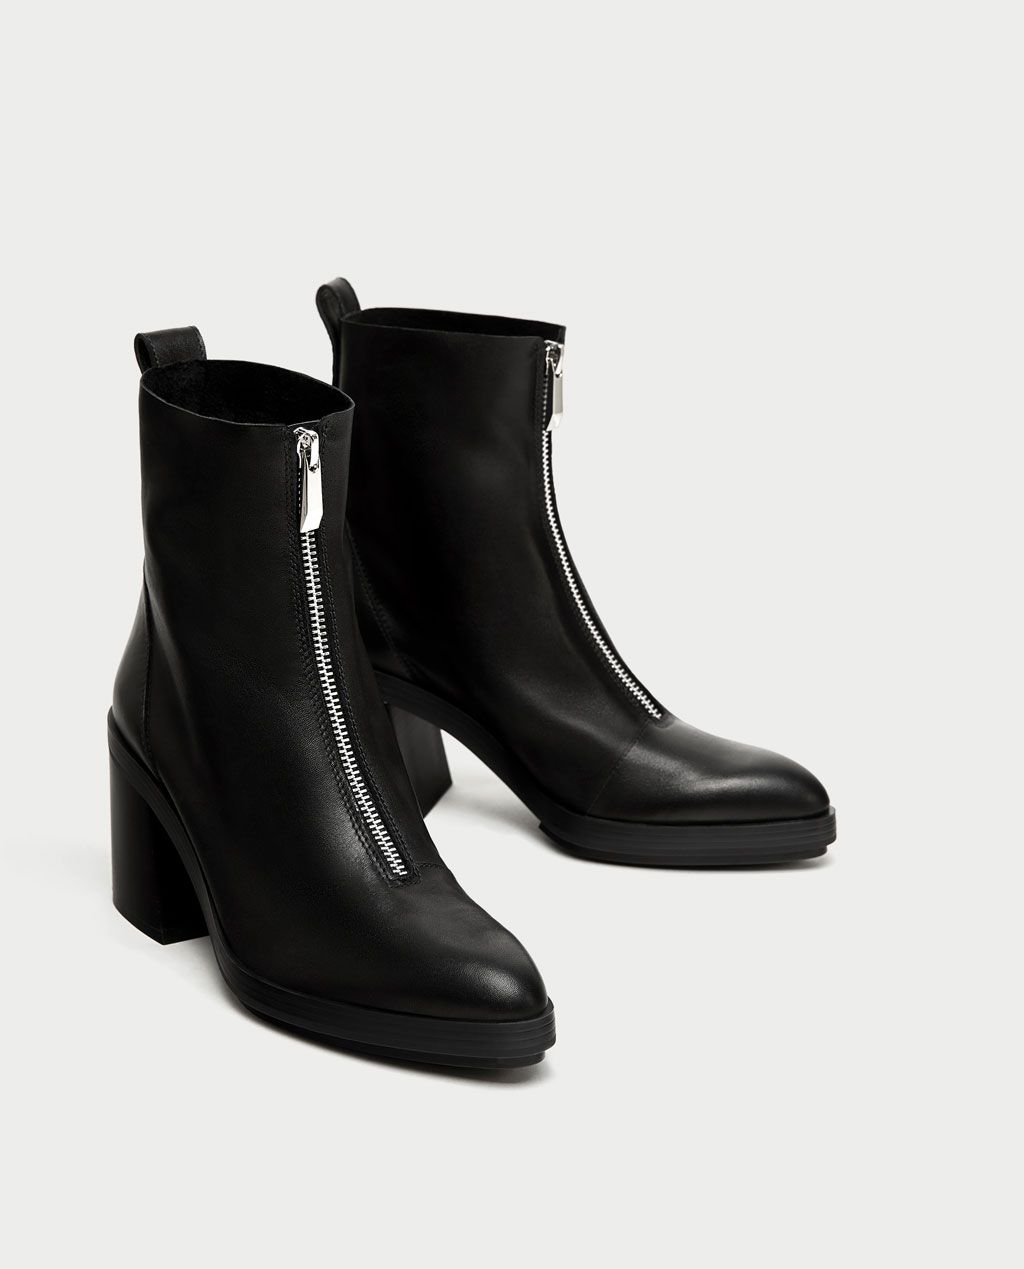 5c71189b600 Image 1 of HIGH HEEL LEATHER ANKLE BOOTS WITH ZIP from Zara | Kicks ...